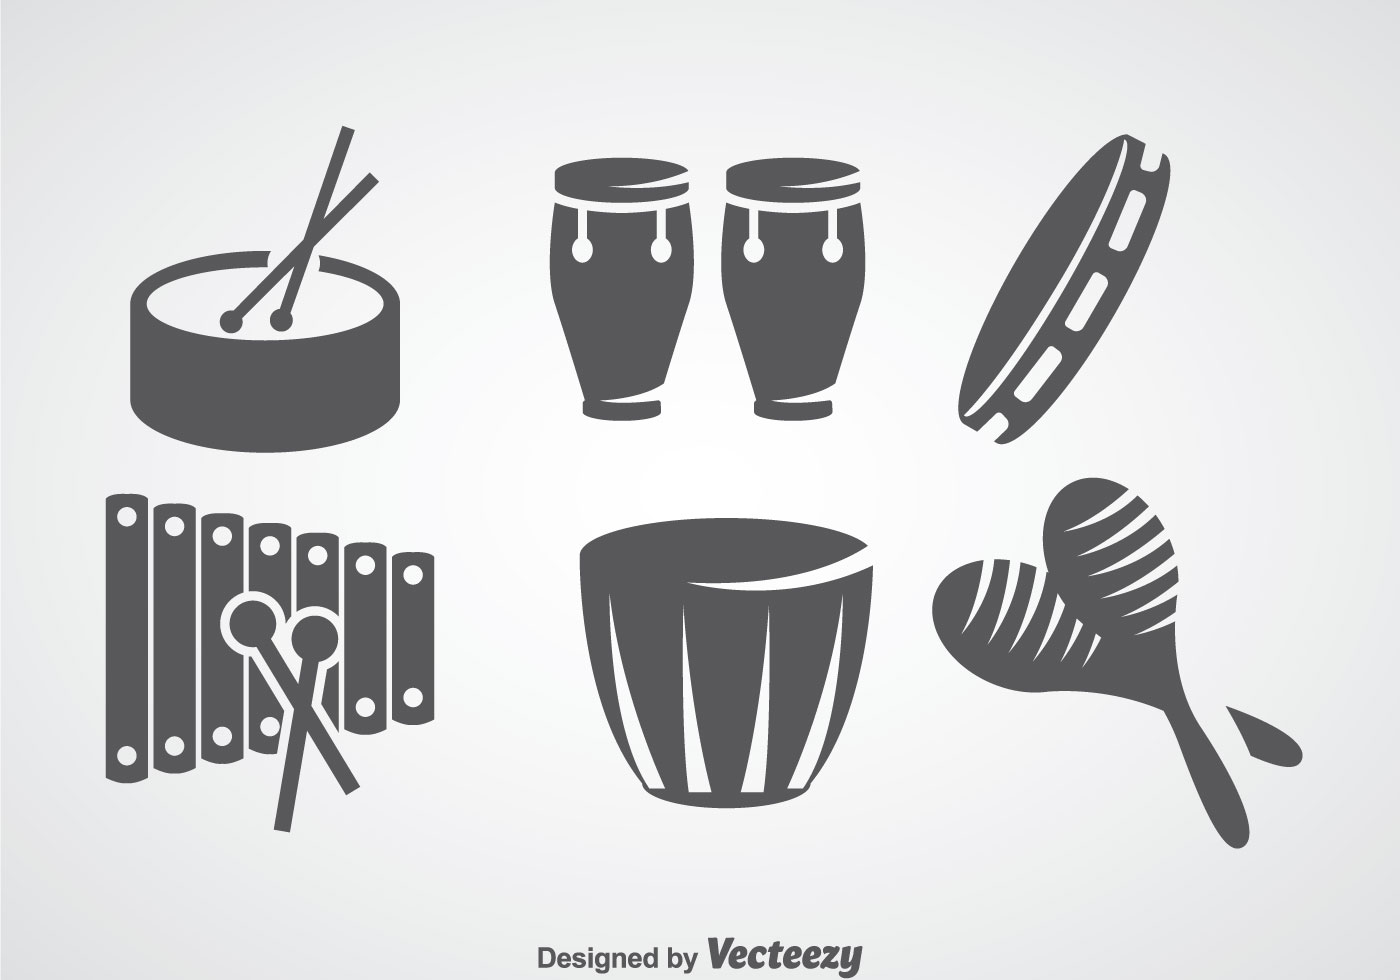 salsa music instrument vector sets download free vector art stock graphics images. Black Bedroom Furniture Sets. Home Design Ideas